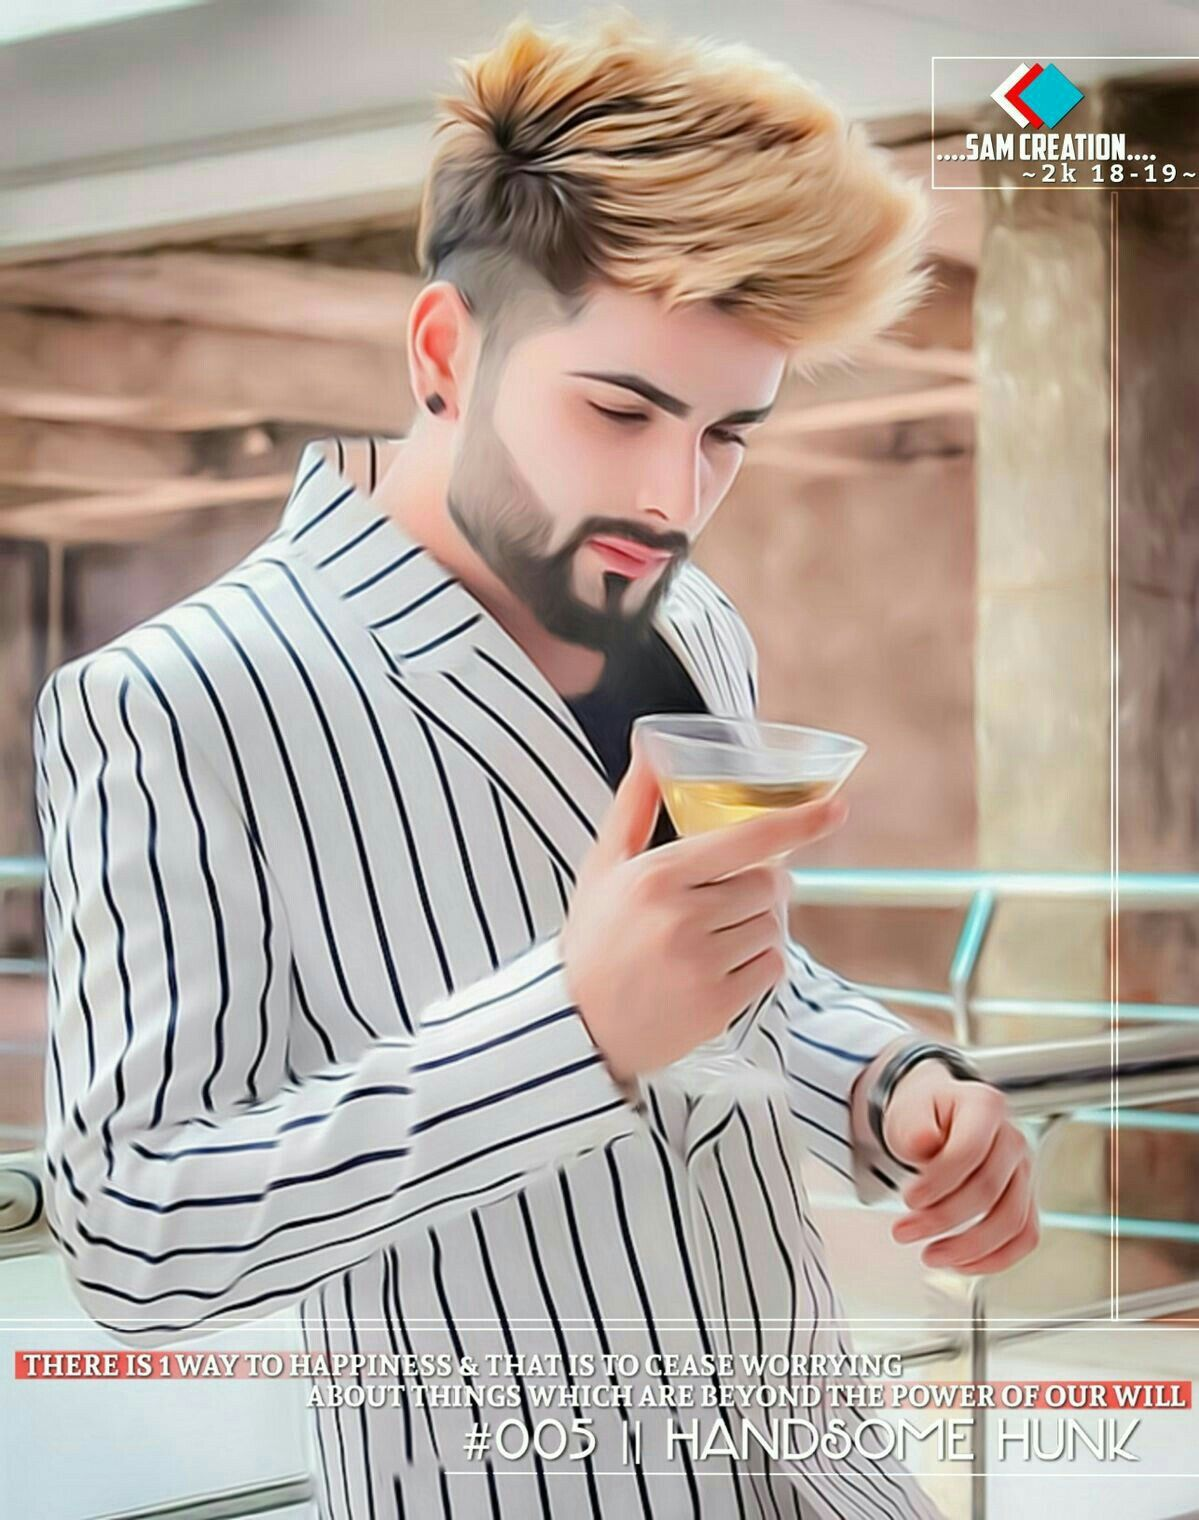 Ammy Verma Jewellers Follow Me On Instagram Touch To Link Contact To Me 1 Https In Pinterest Com Amm Beard Styles For Men Boys Haircut Styles Beard Styles